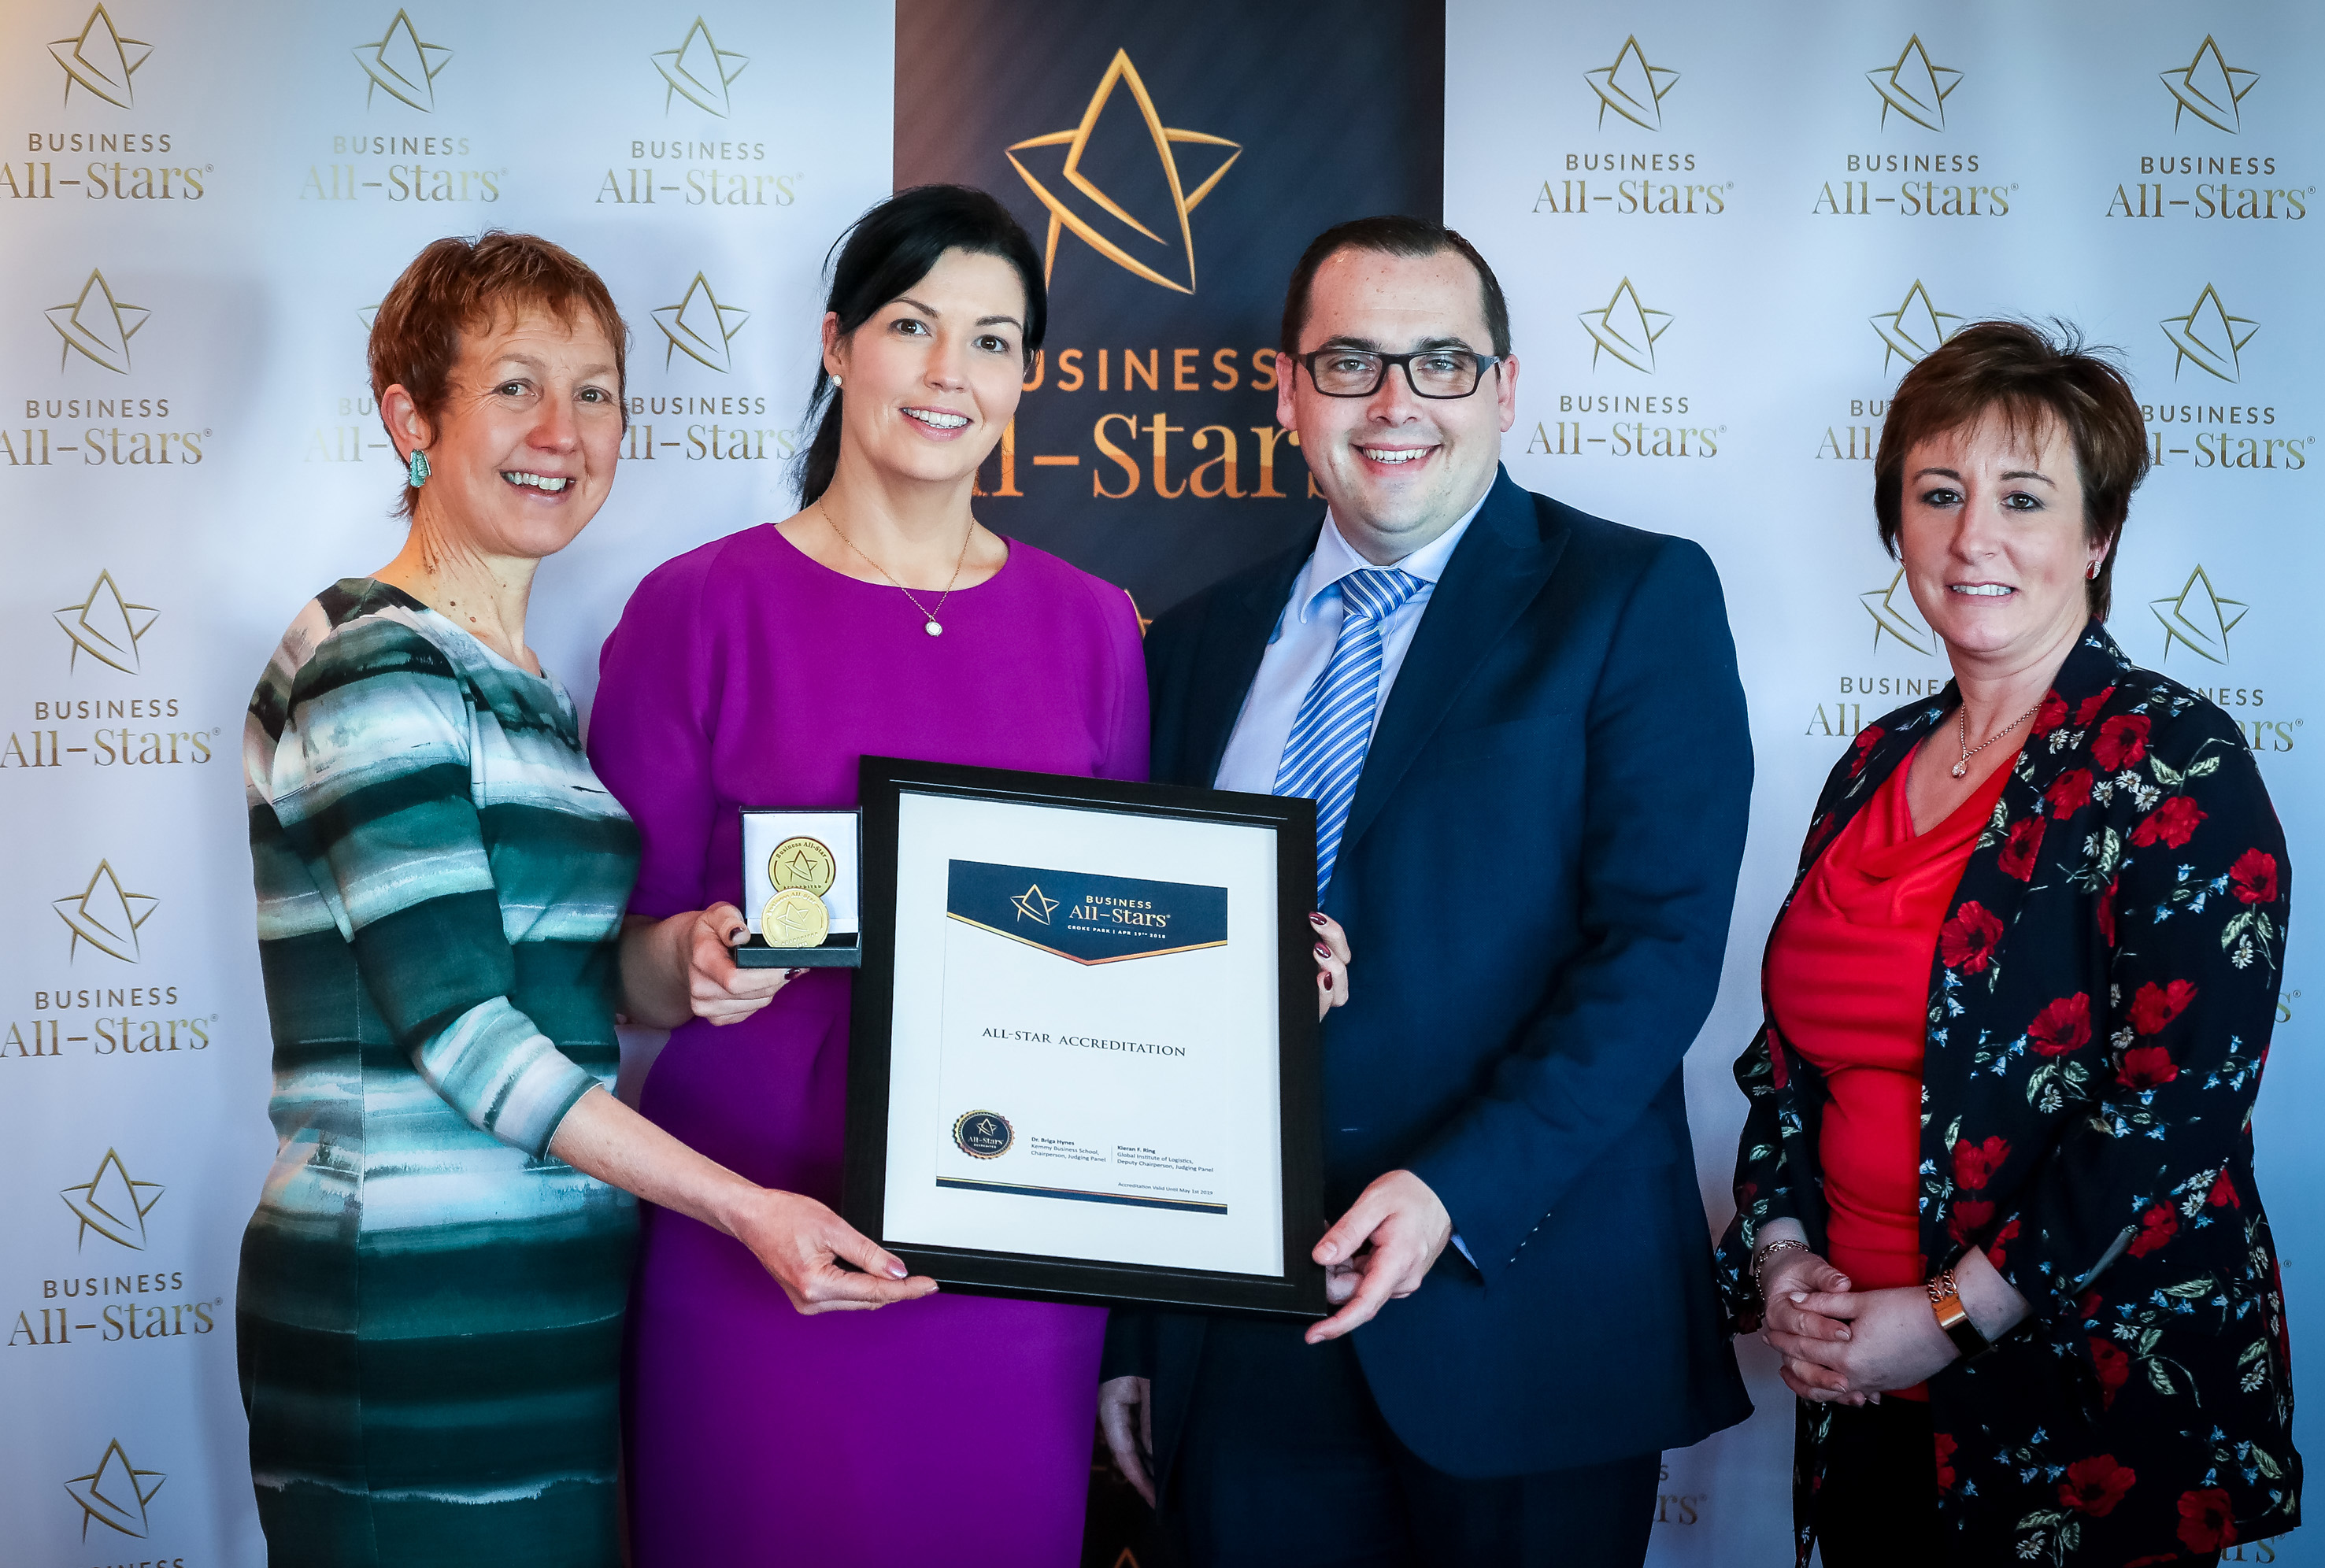 19-4-18 All Ireland Business Summit, Business All Stars in Croke Park. Picture: Keith Wiseman